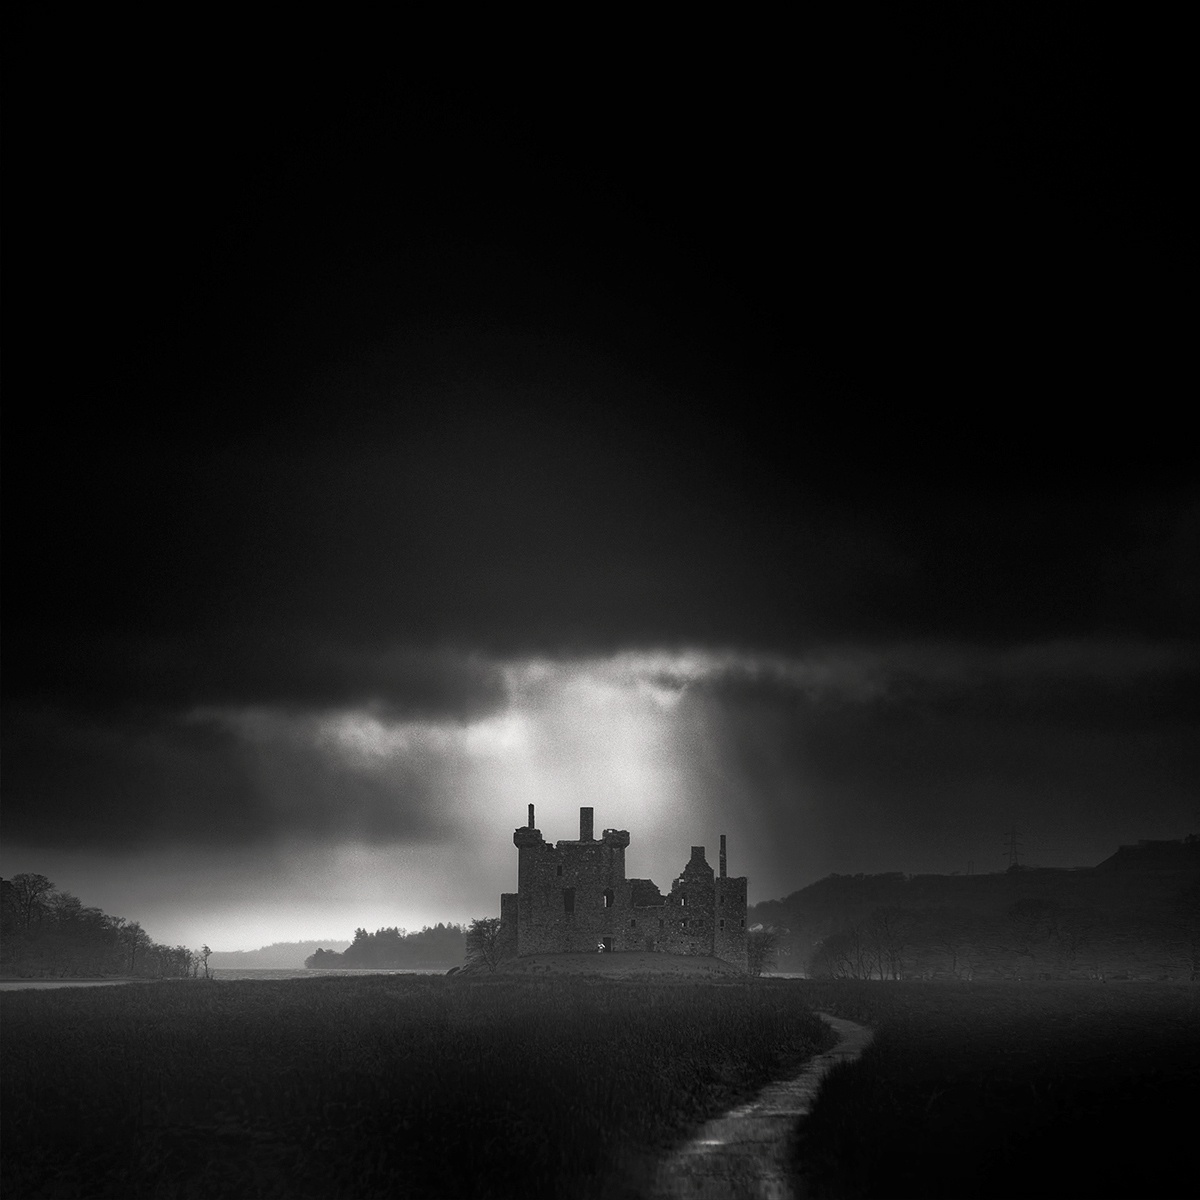 Castillos de Arena - Andy Lee - 4